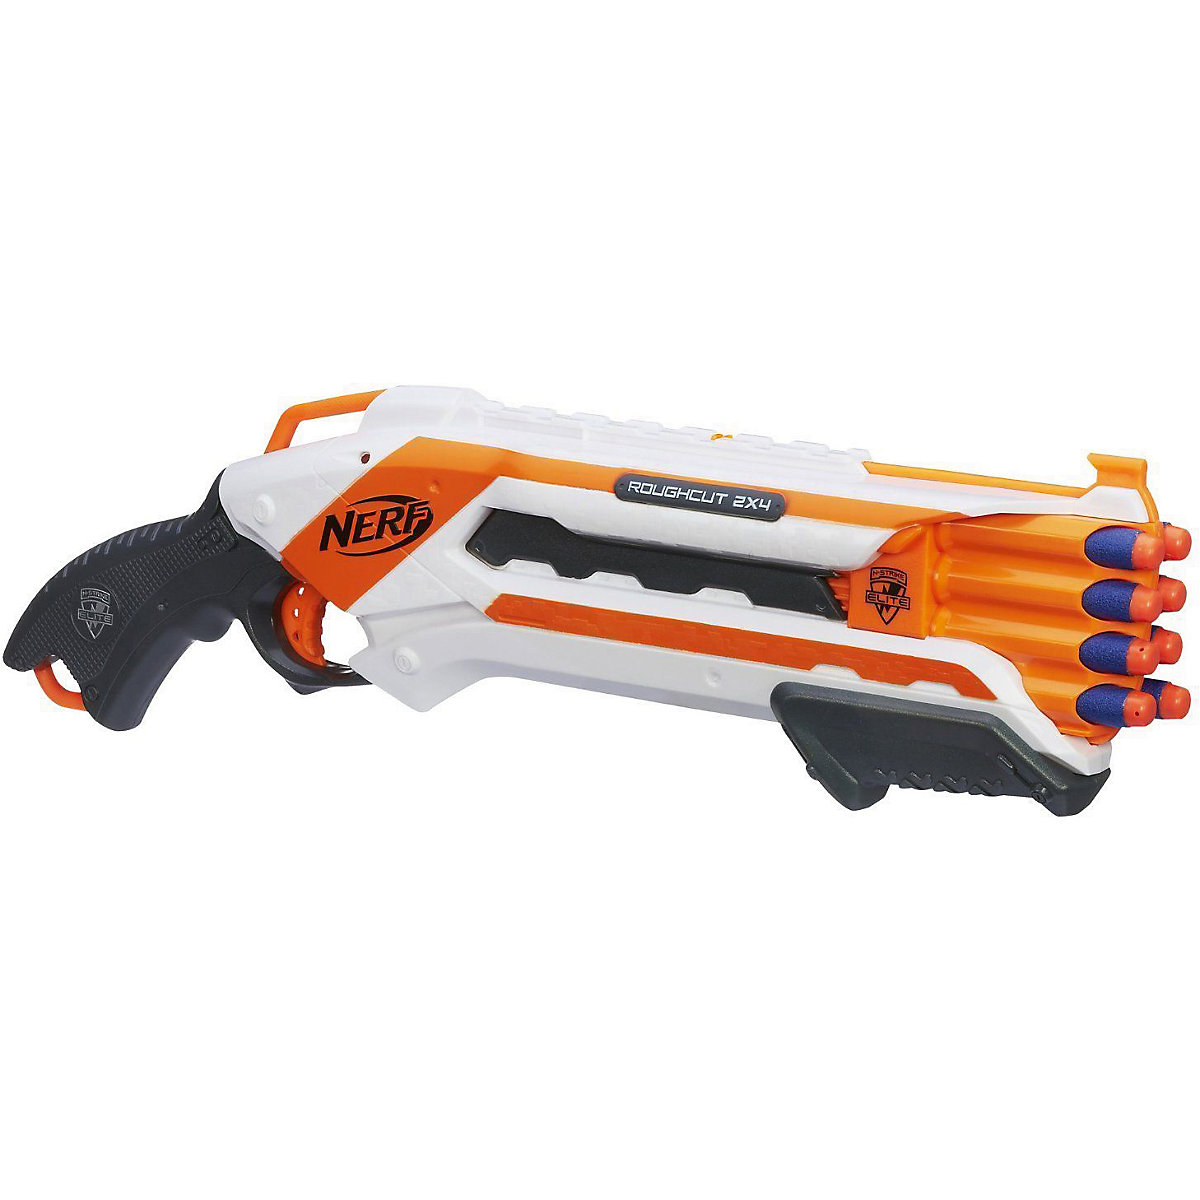 Toy Guns NERF 3222052 Children Kids Toy Gun Weapon Blasters Boys Shooting games Outdoor play tactical x300 pistol gun light 500 lumens high output weapon flashlight fit 20mm picatinny weaver rail